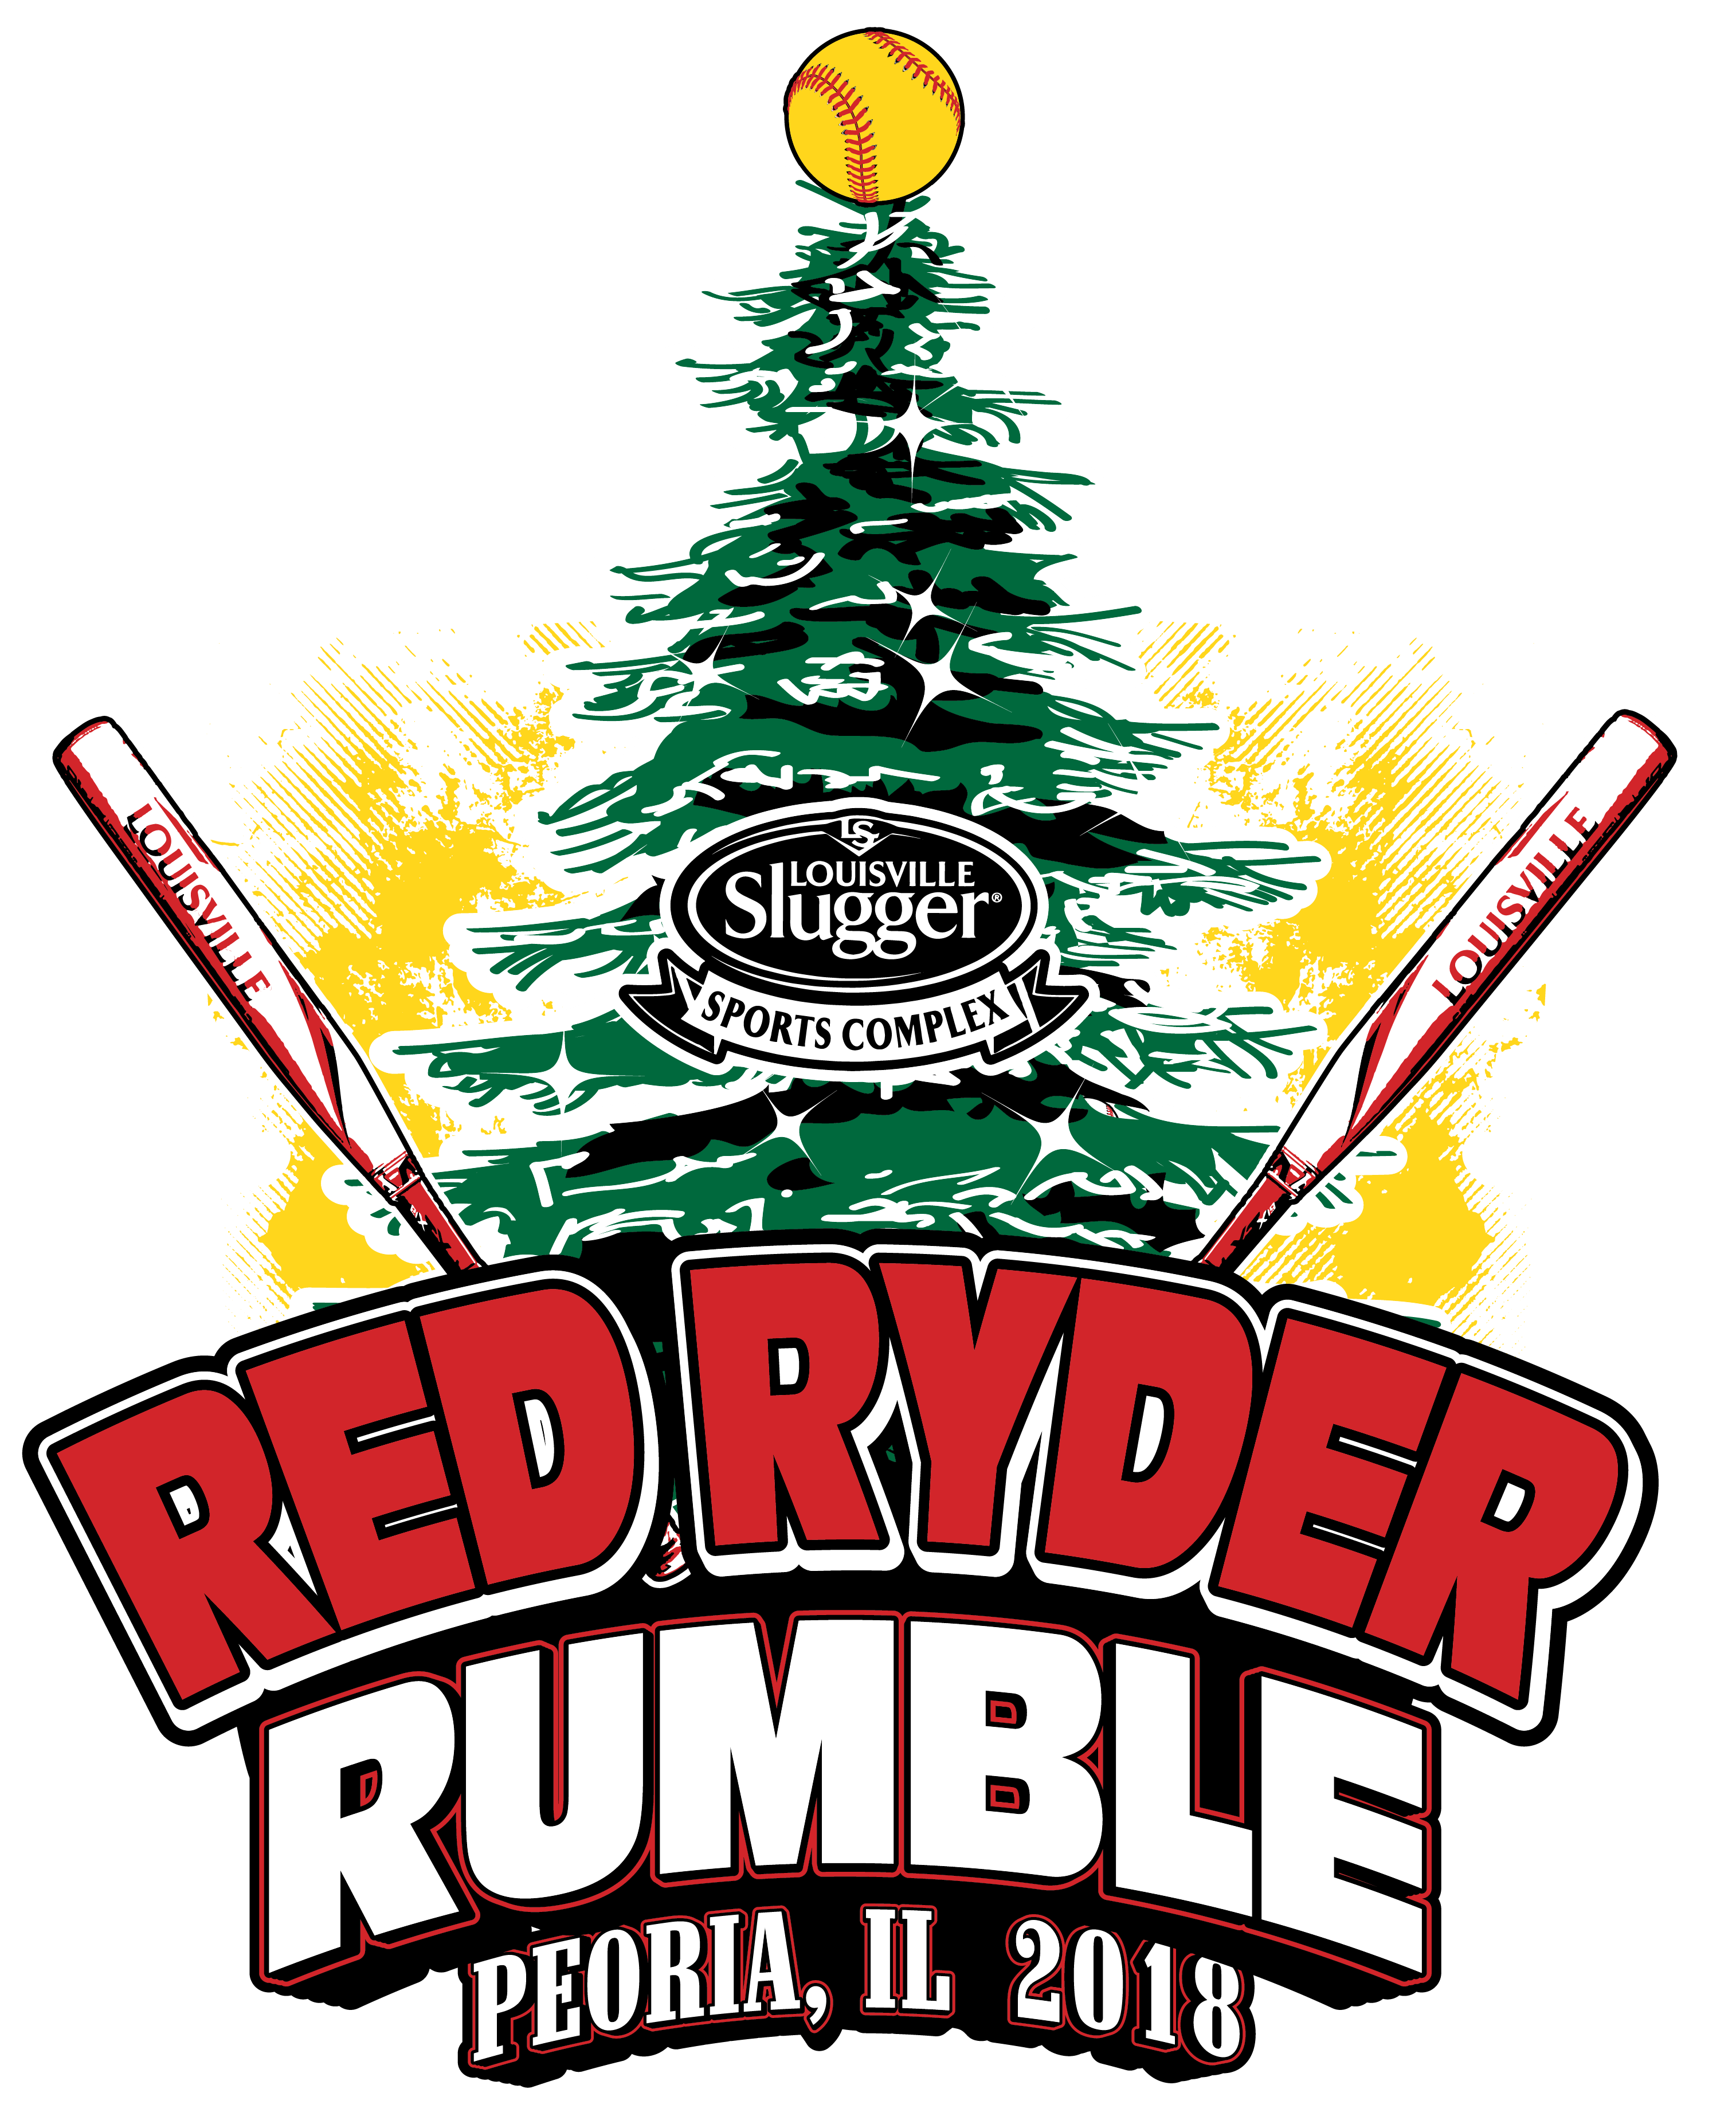 Red Ryder Rumble